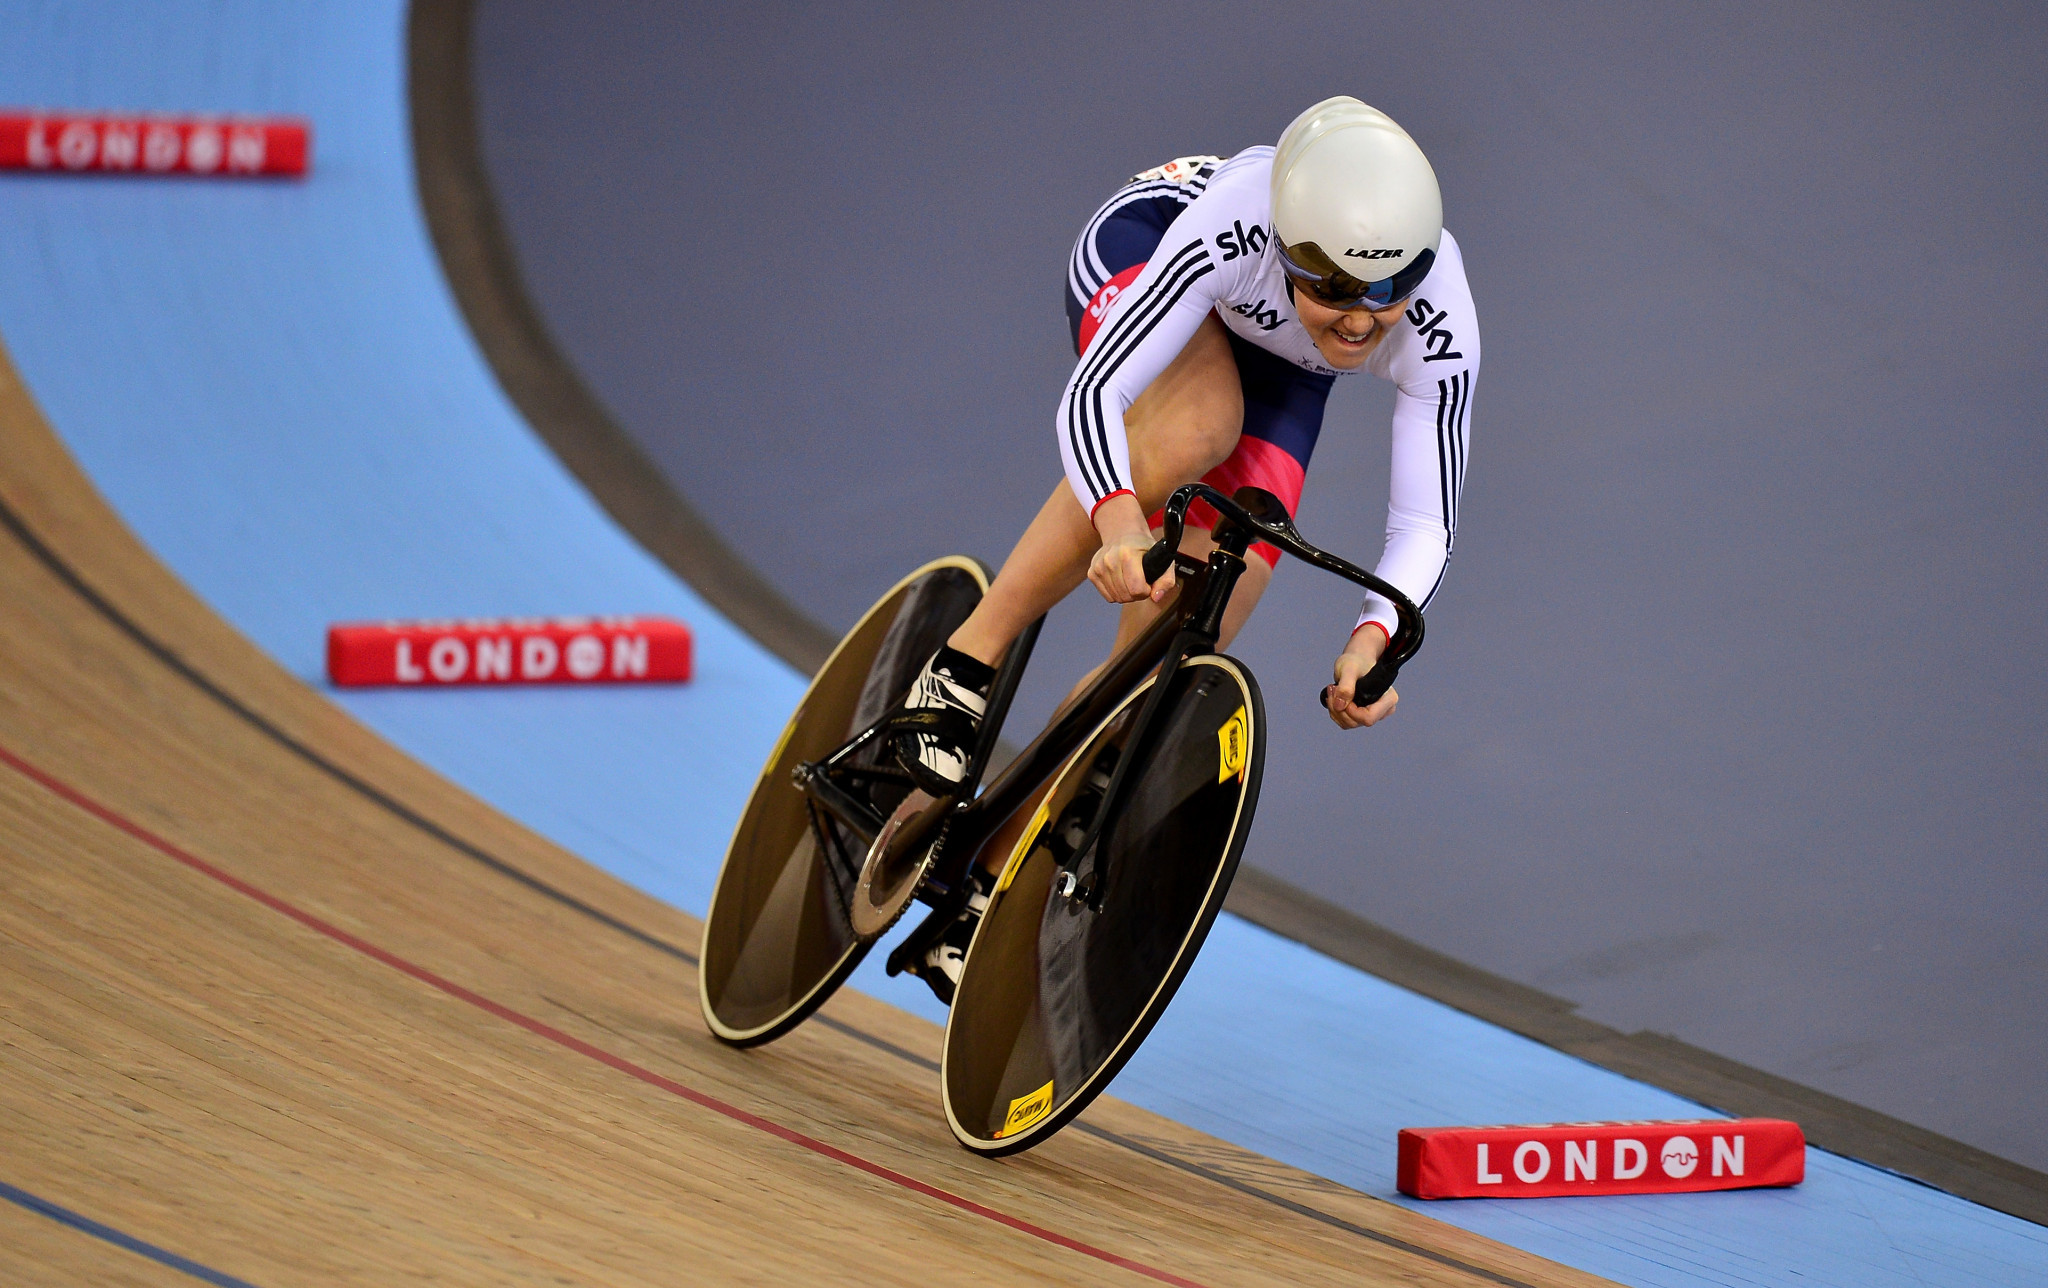 Jess Varnish is a former European team sprint champion and world silver medallist ©Getty Images